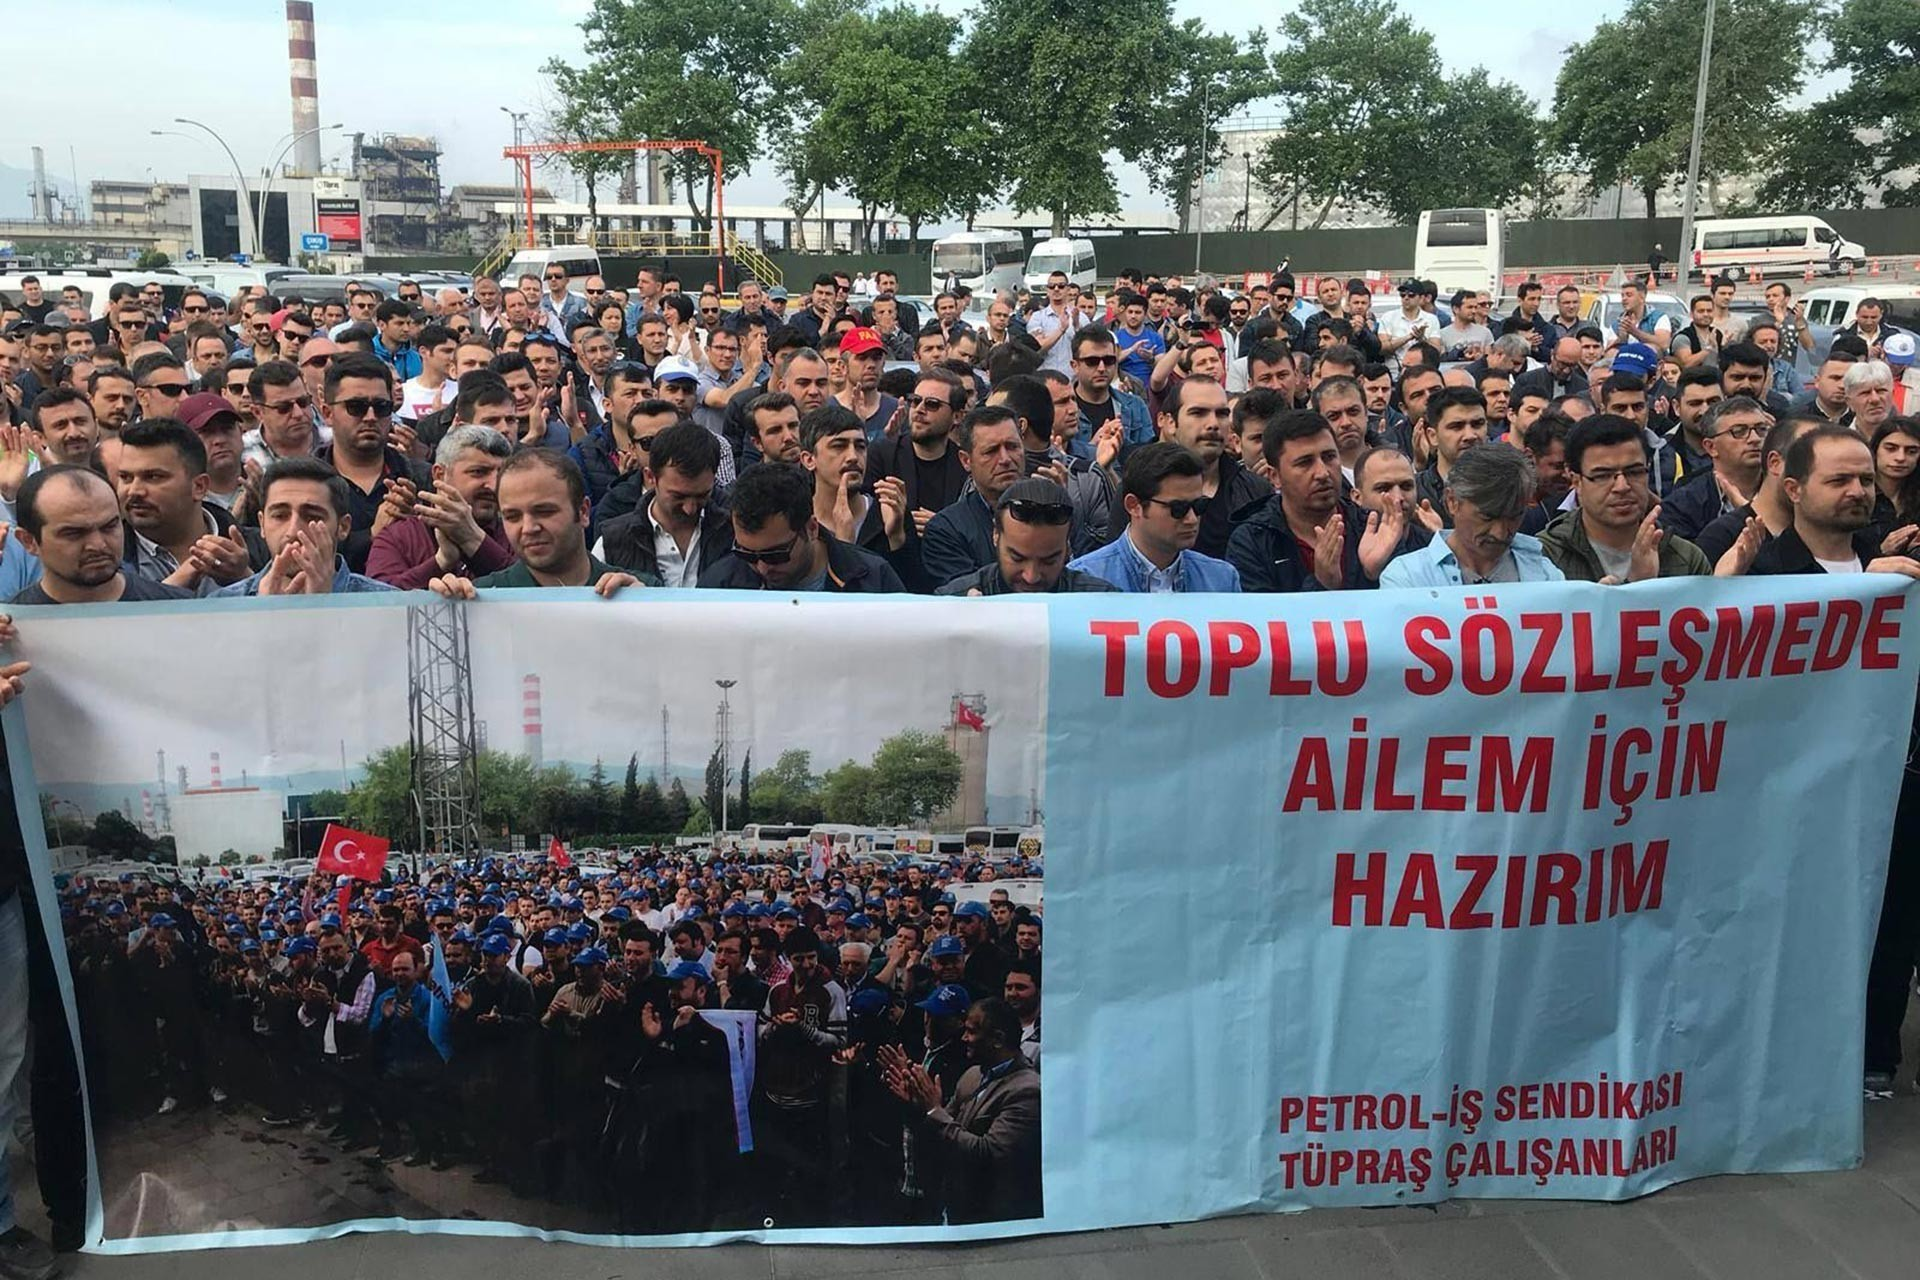 TÜPRAŞ workers closure in refineries in Batman, Kırıkkale, Kocaeli and Aliağa